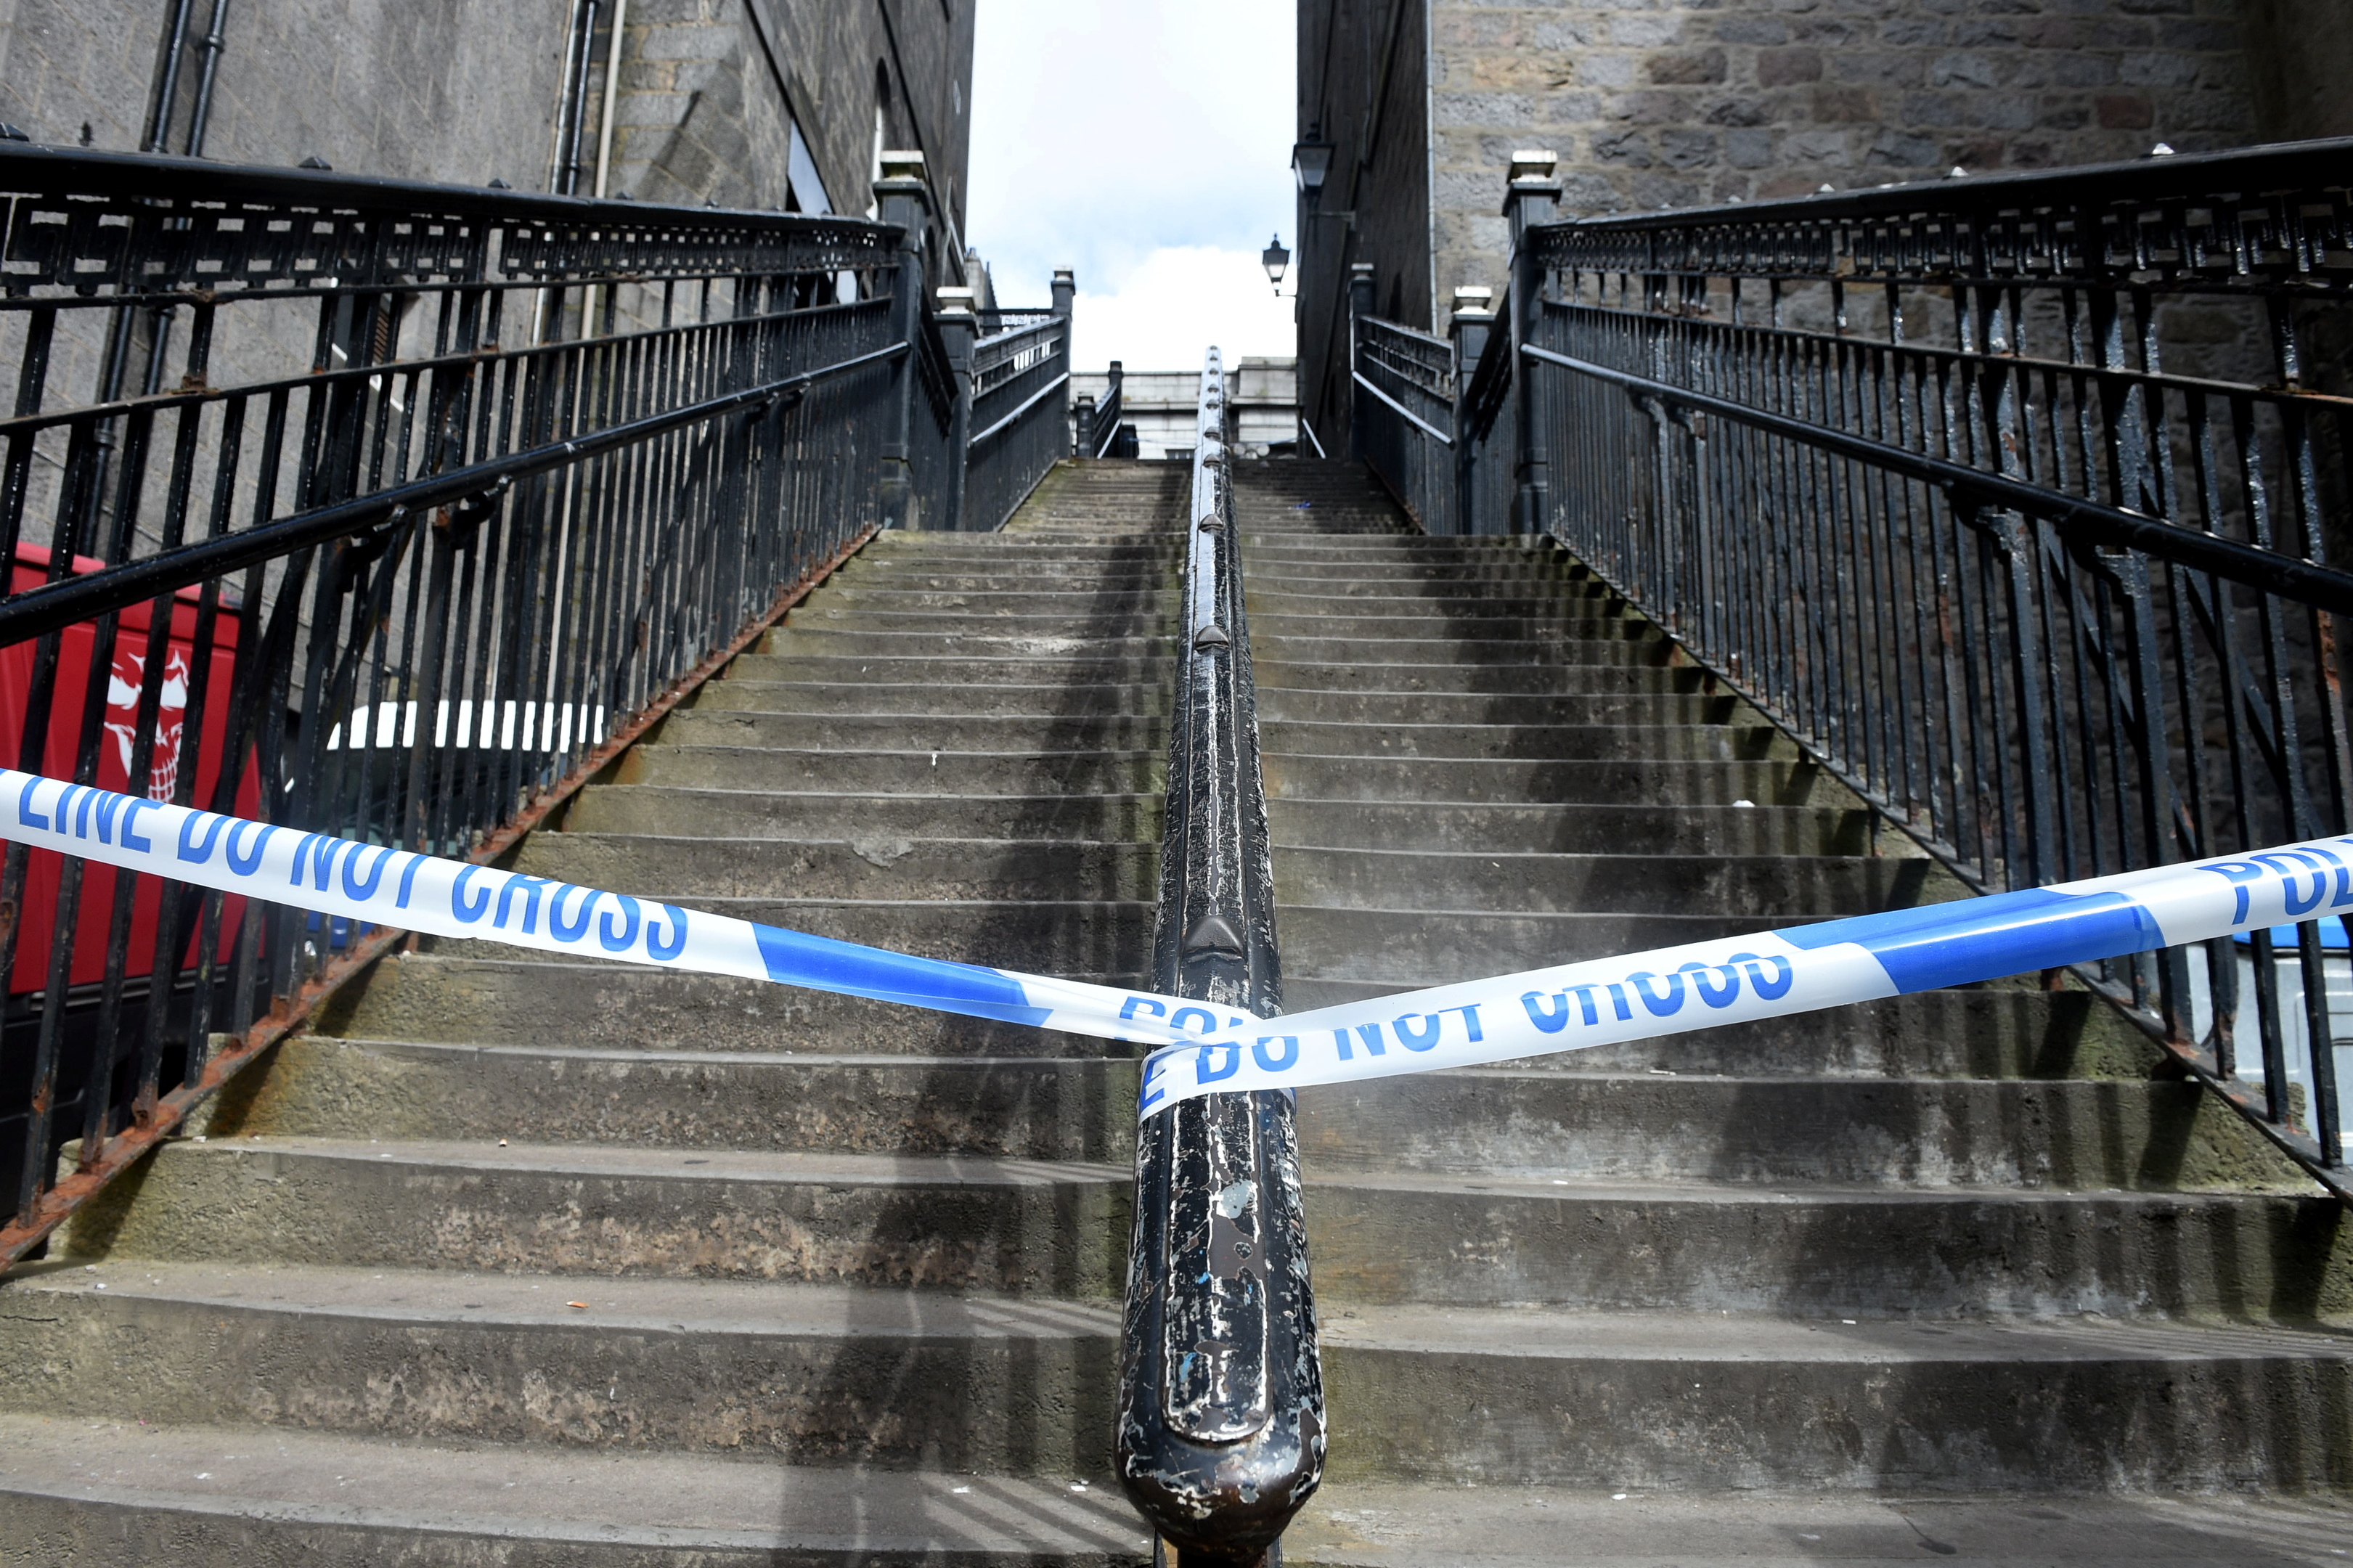 A man fell on the stairs in June